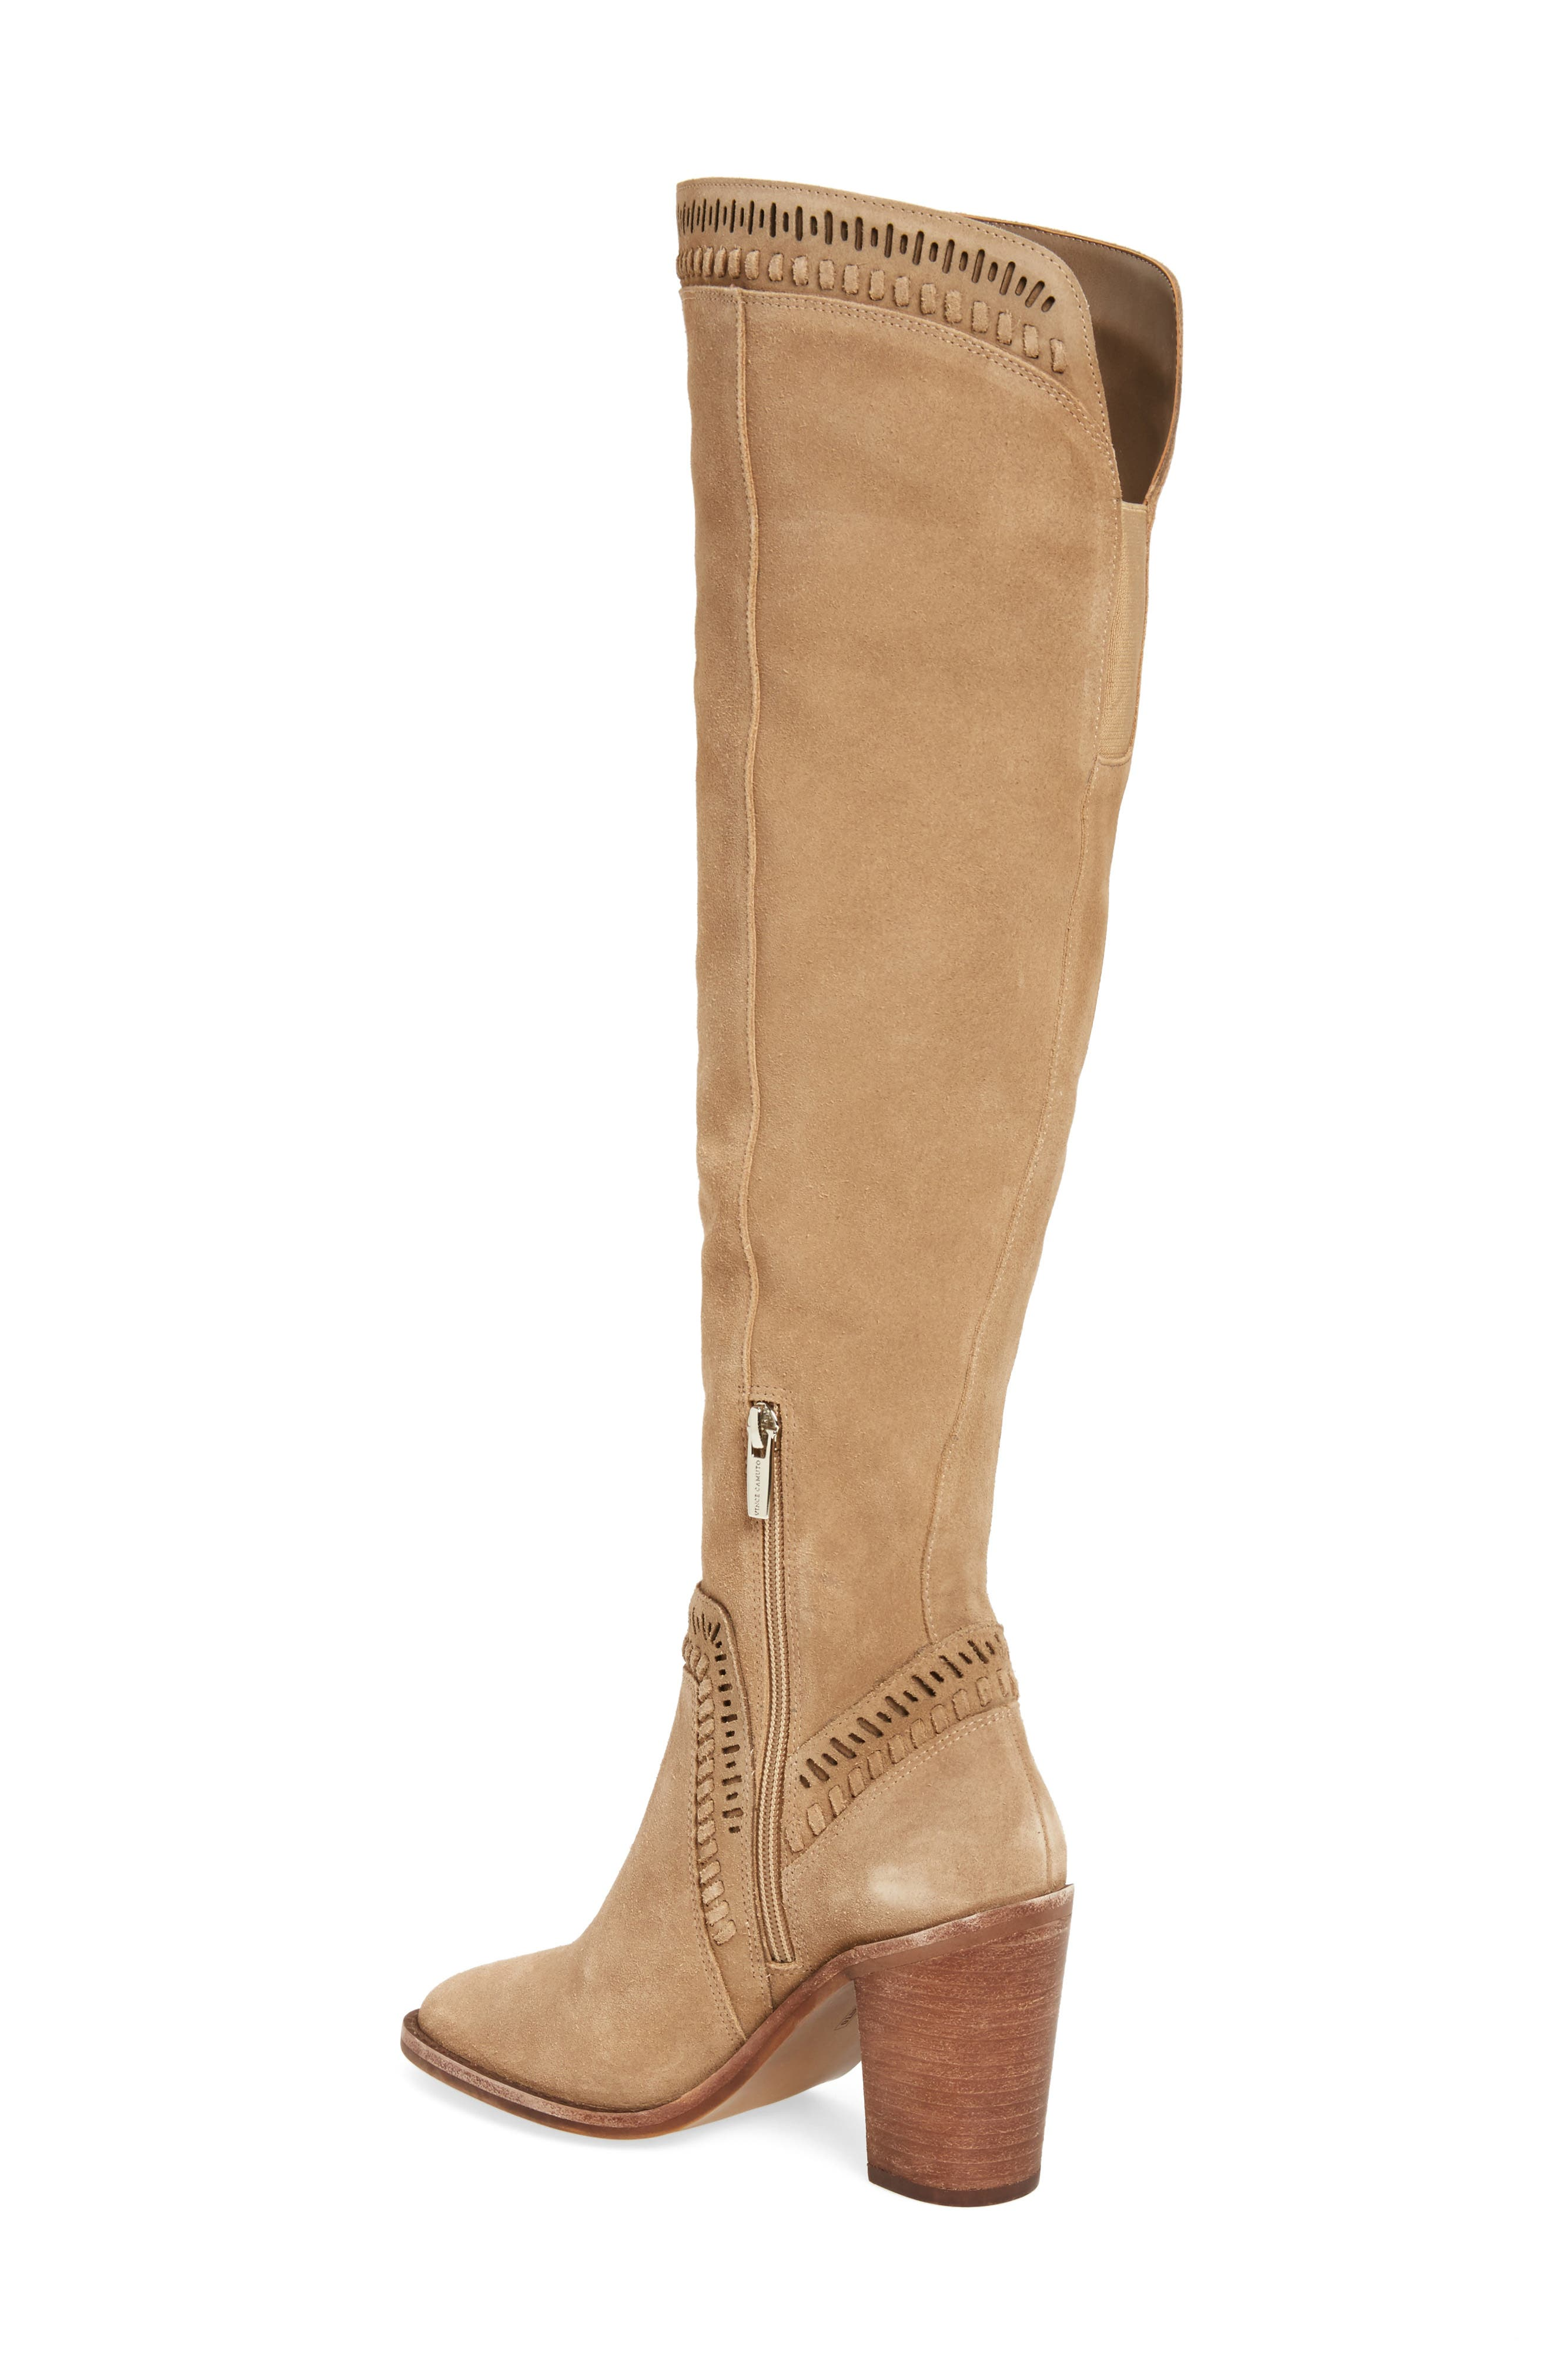 Madolee Over the Knee Boot,                             Alternate thumbnail 8, color,